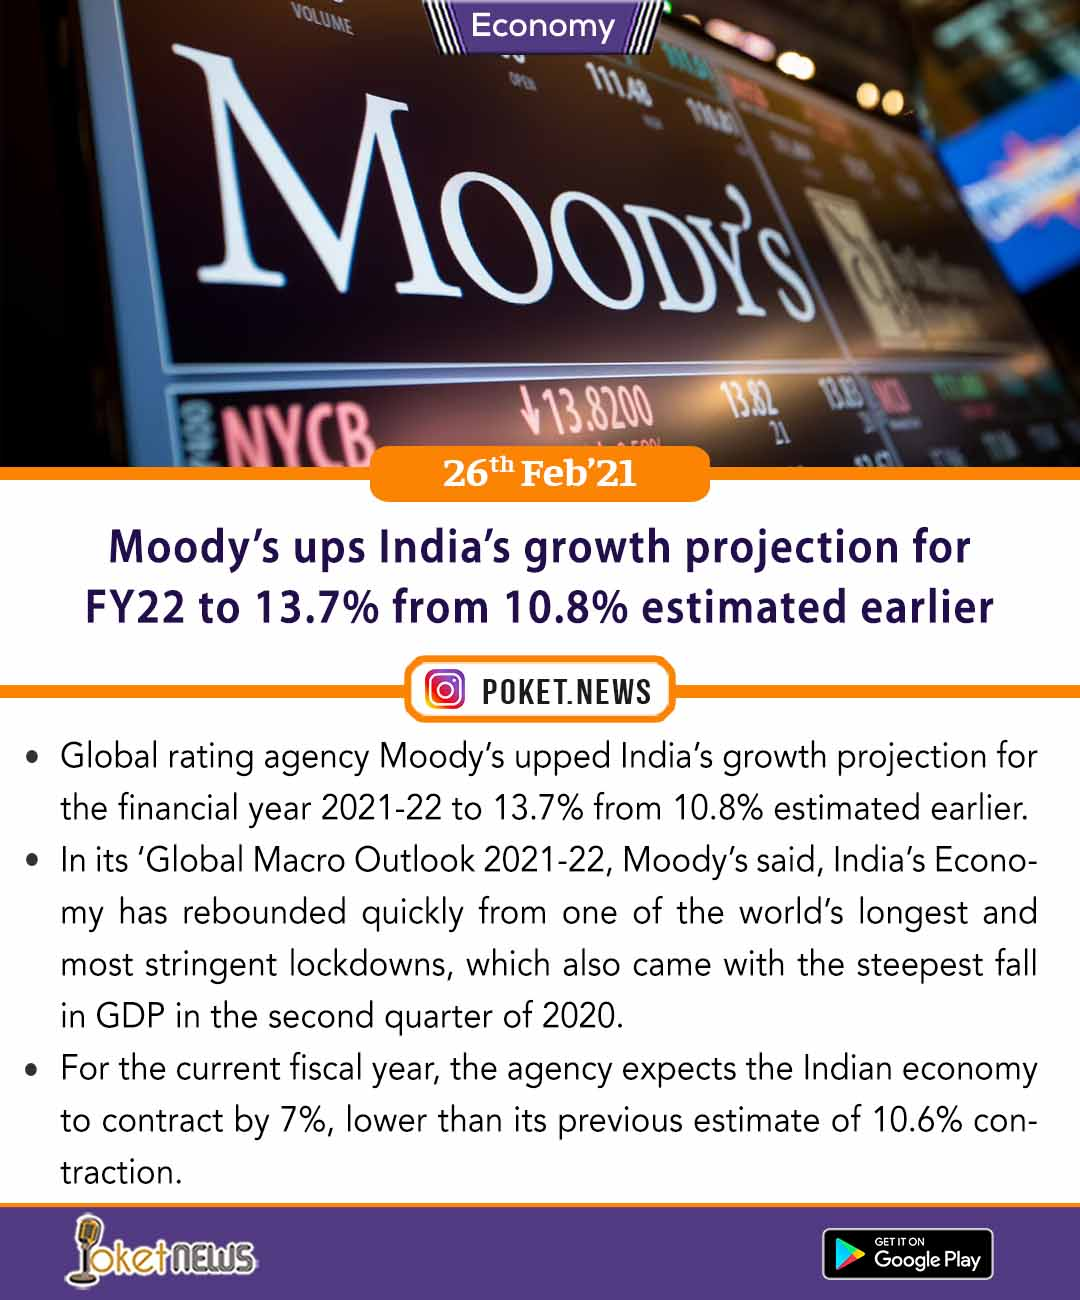 Moody's ups India's growth projection for FY22 to 13.7% from 10.8% estimated earlier